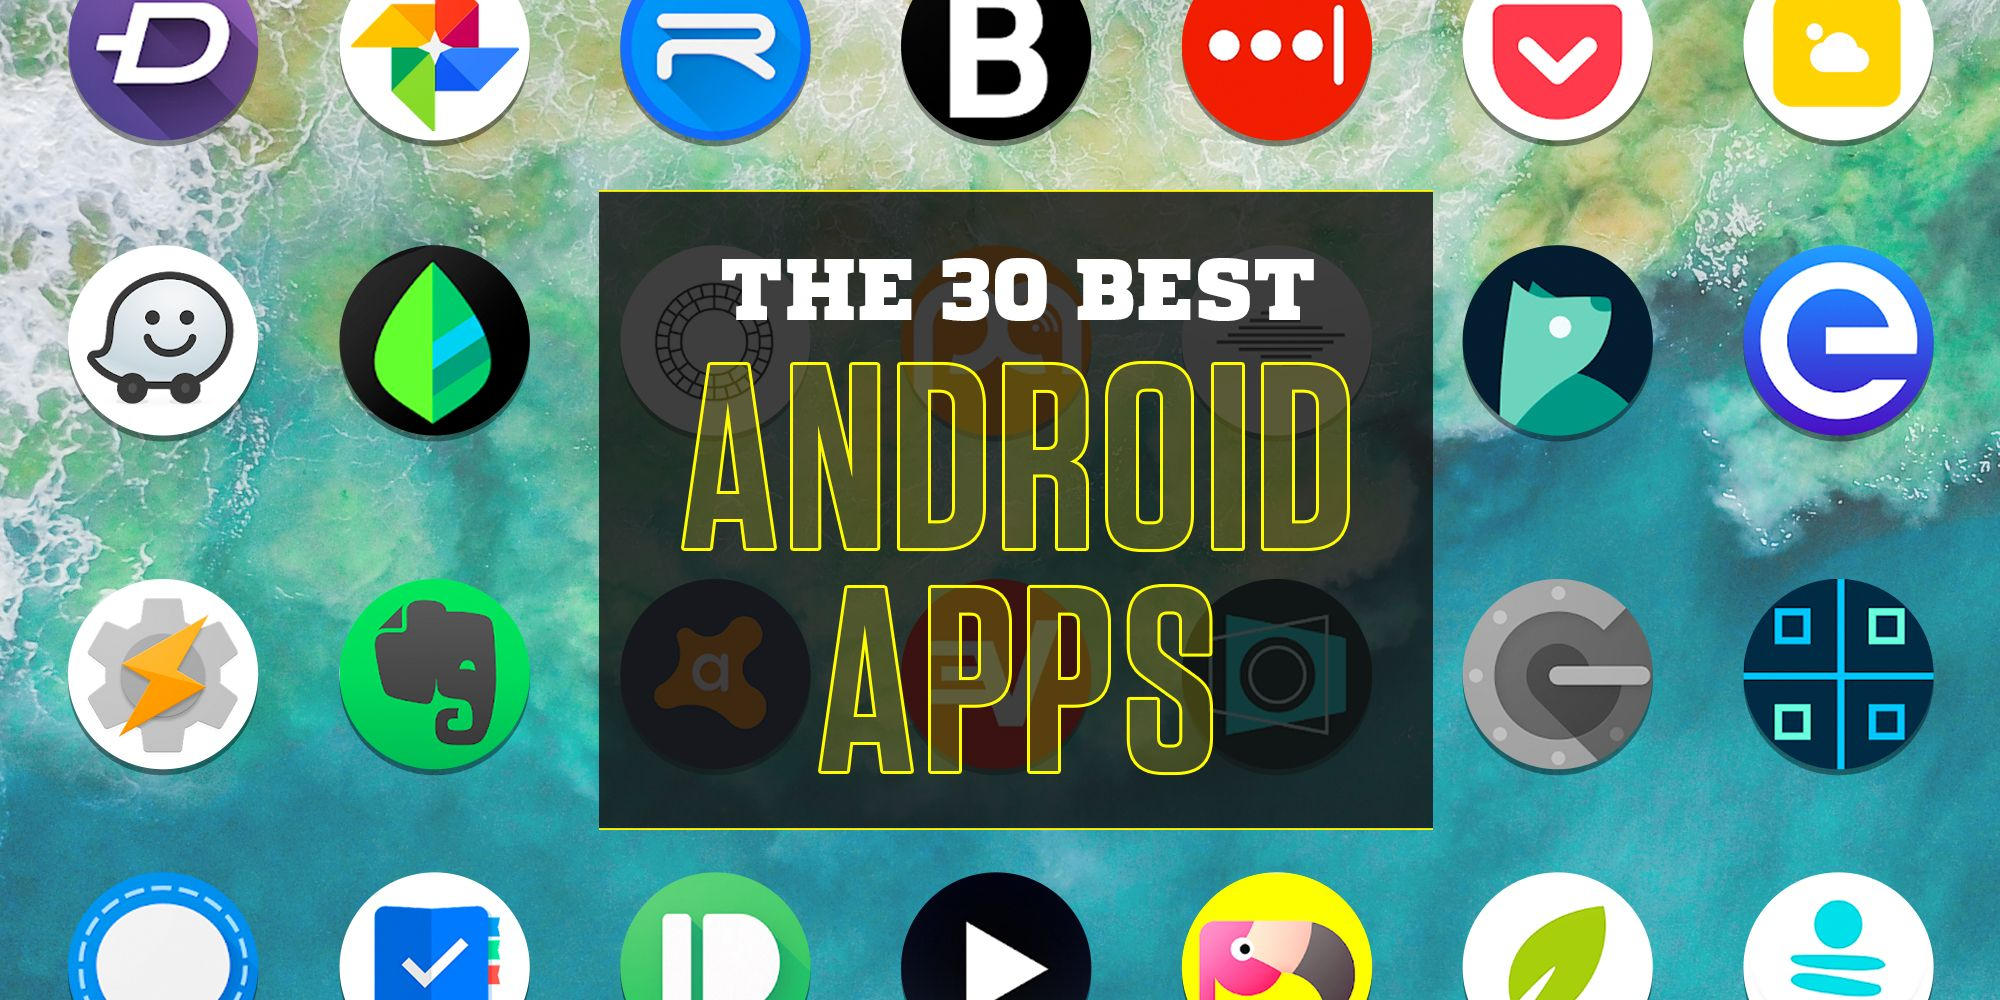 30 Best Android Apps of 2018 - Best Android Apps to ...